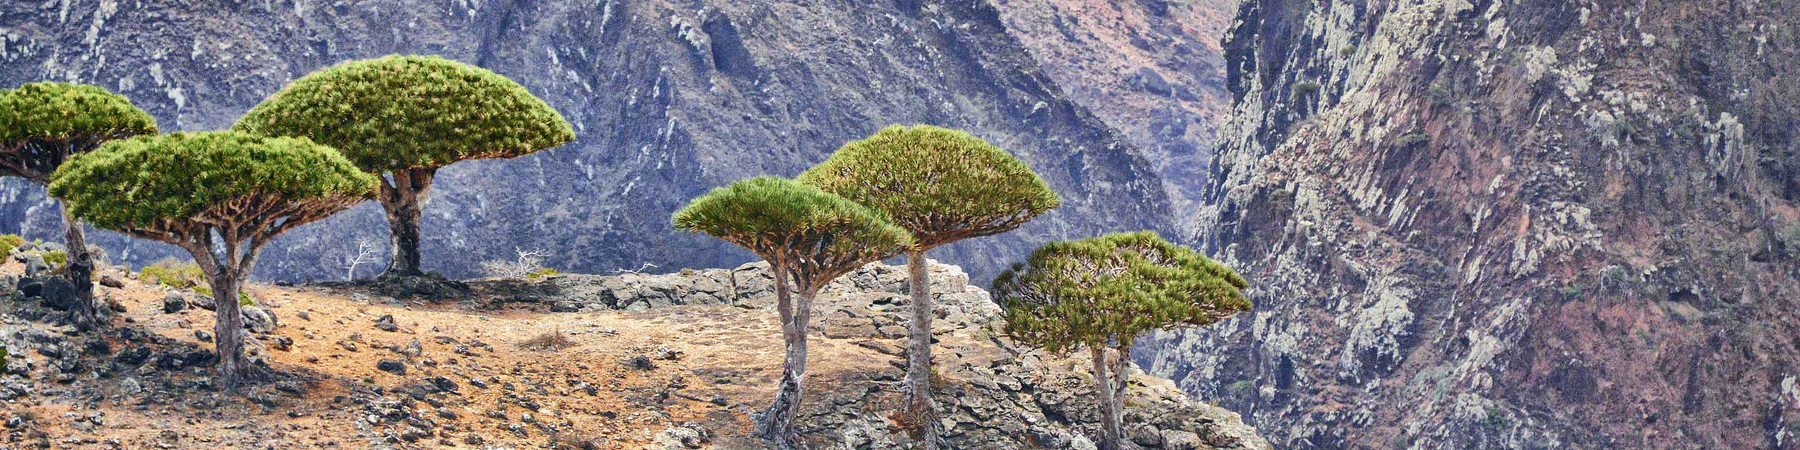 Dragonblood Tree